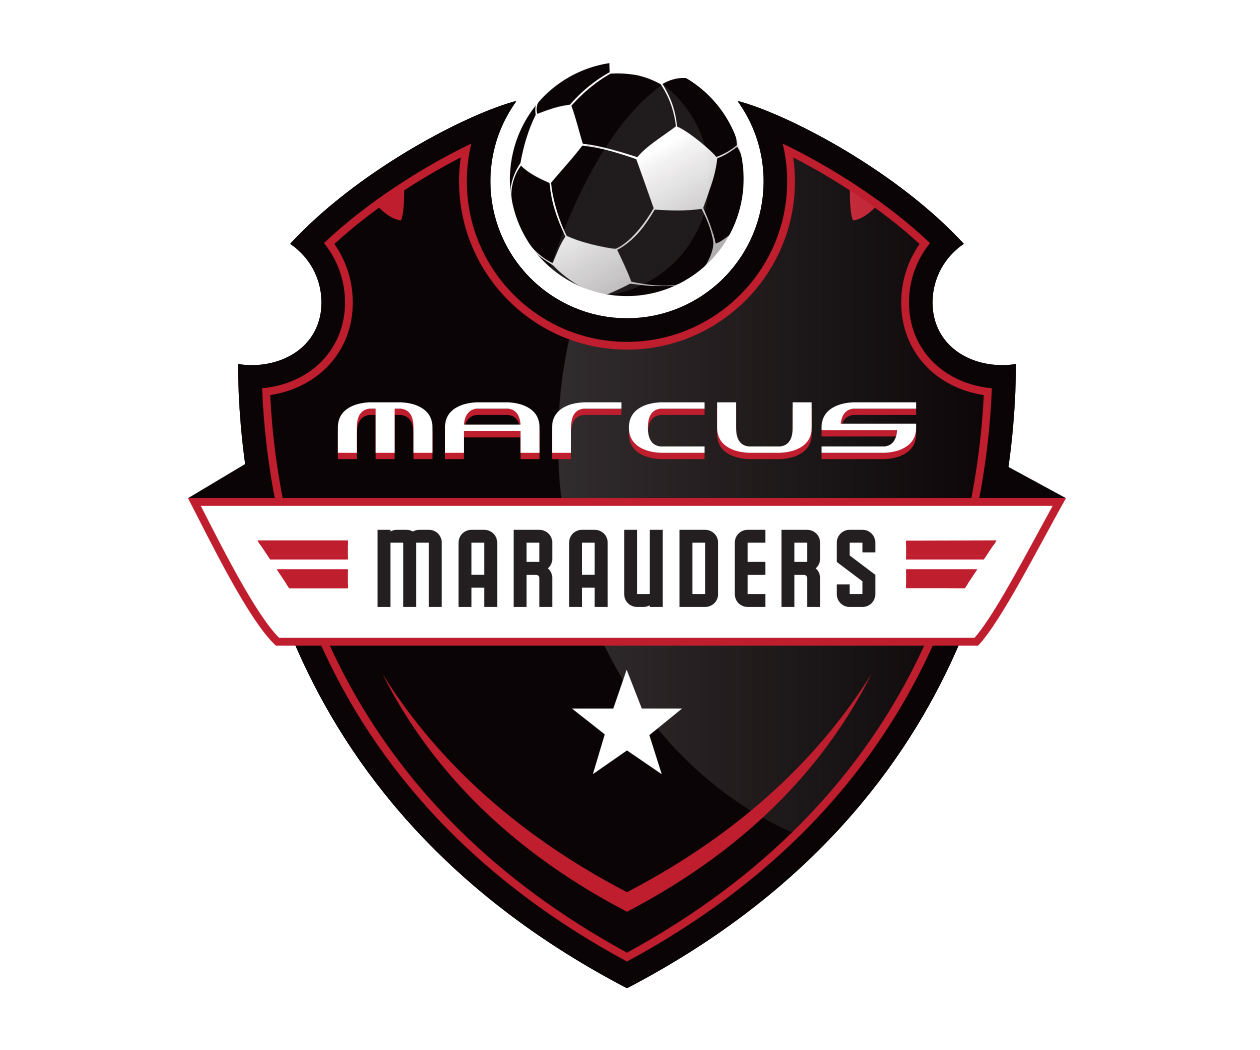 custom-soccer-logo-design-by-jordan-fretz-for-marcus-marauders.jpg